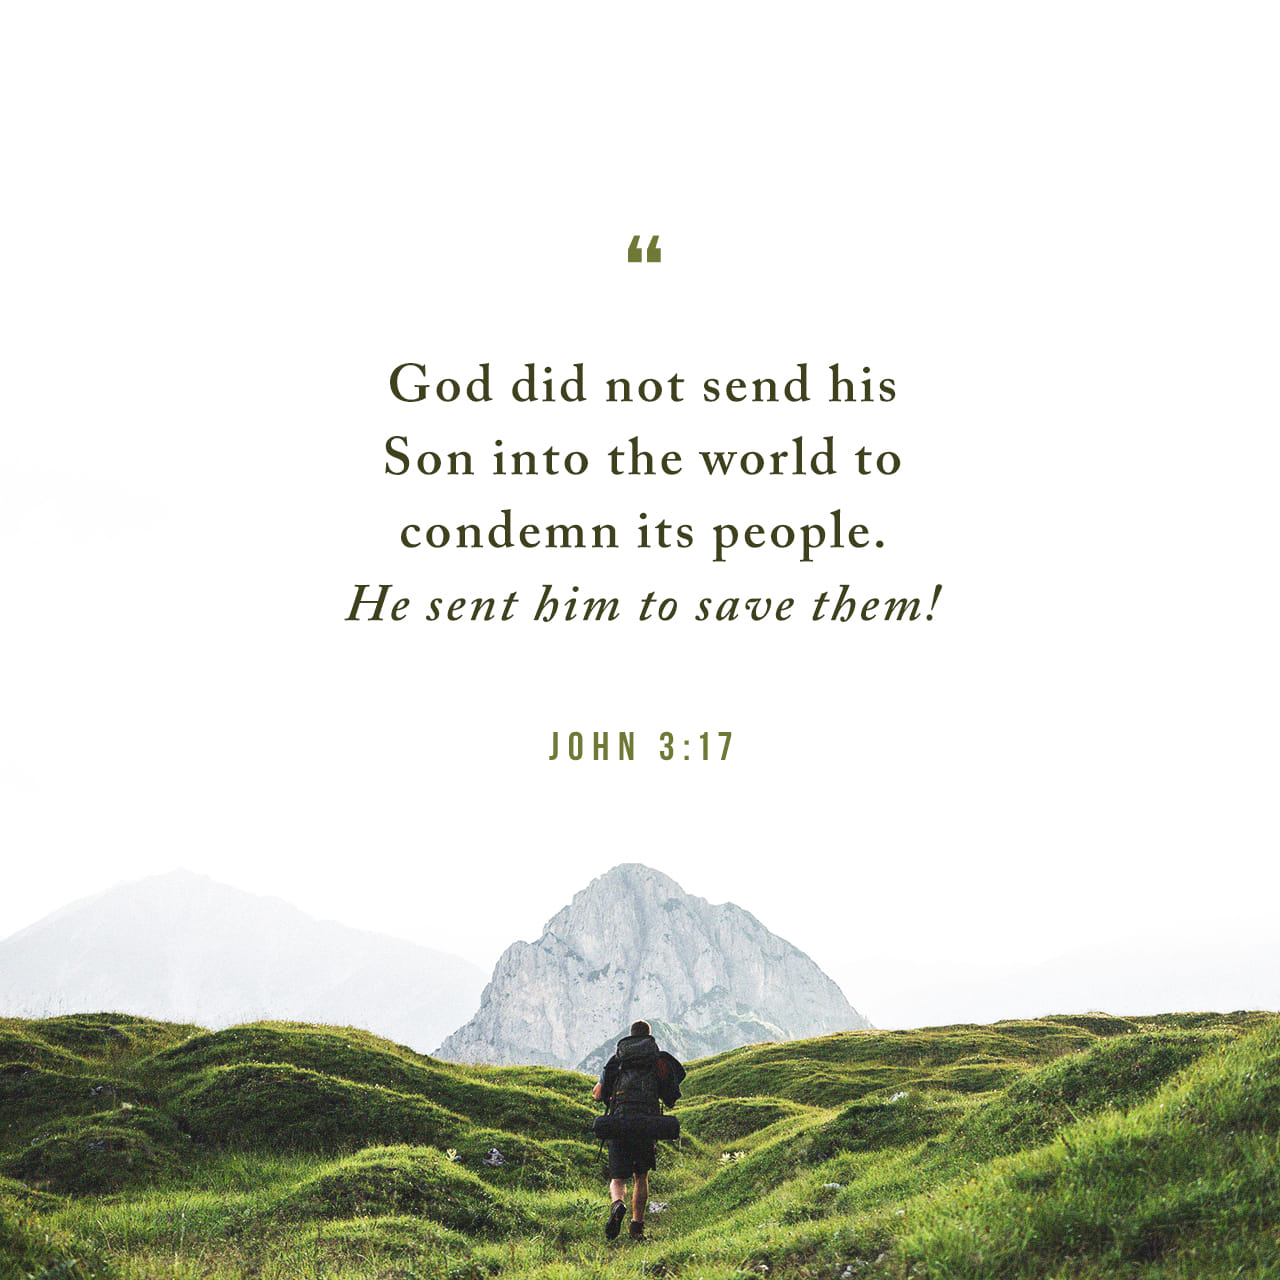 John 3:17 For God did not send his Son into the world to condemn the world, but in order that the world might be saved through him.   English Standard Version (ESV)   Download The Bible App Now